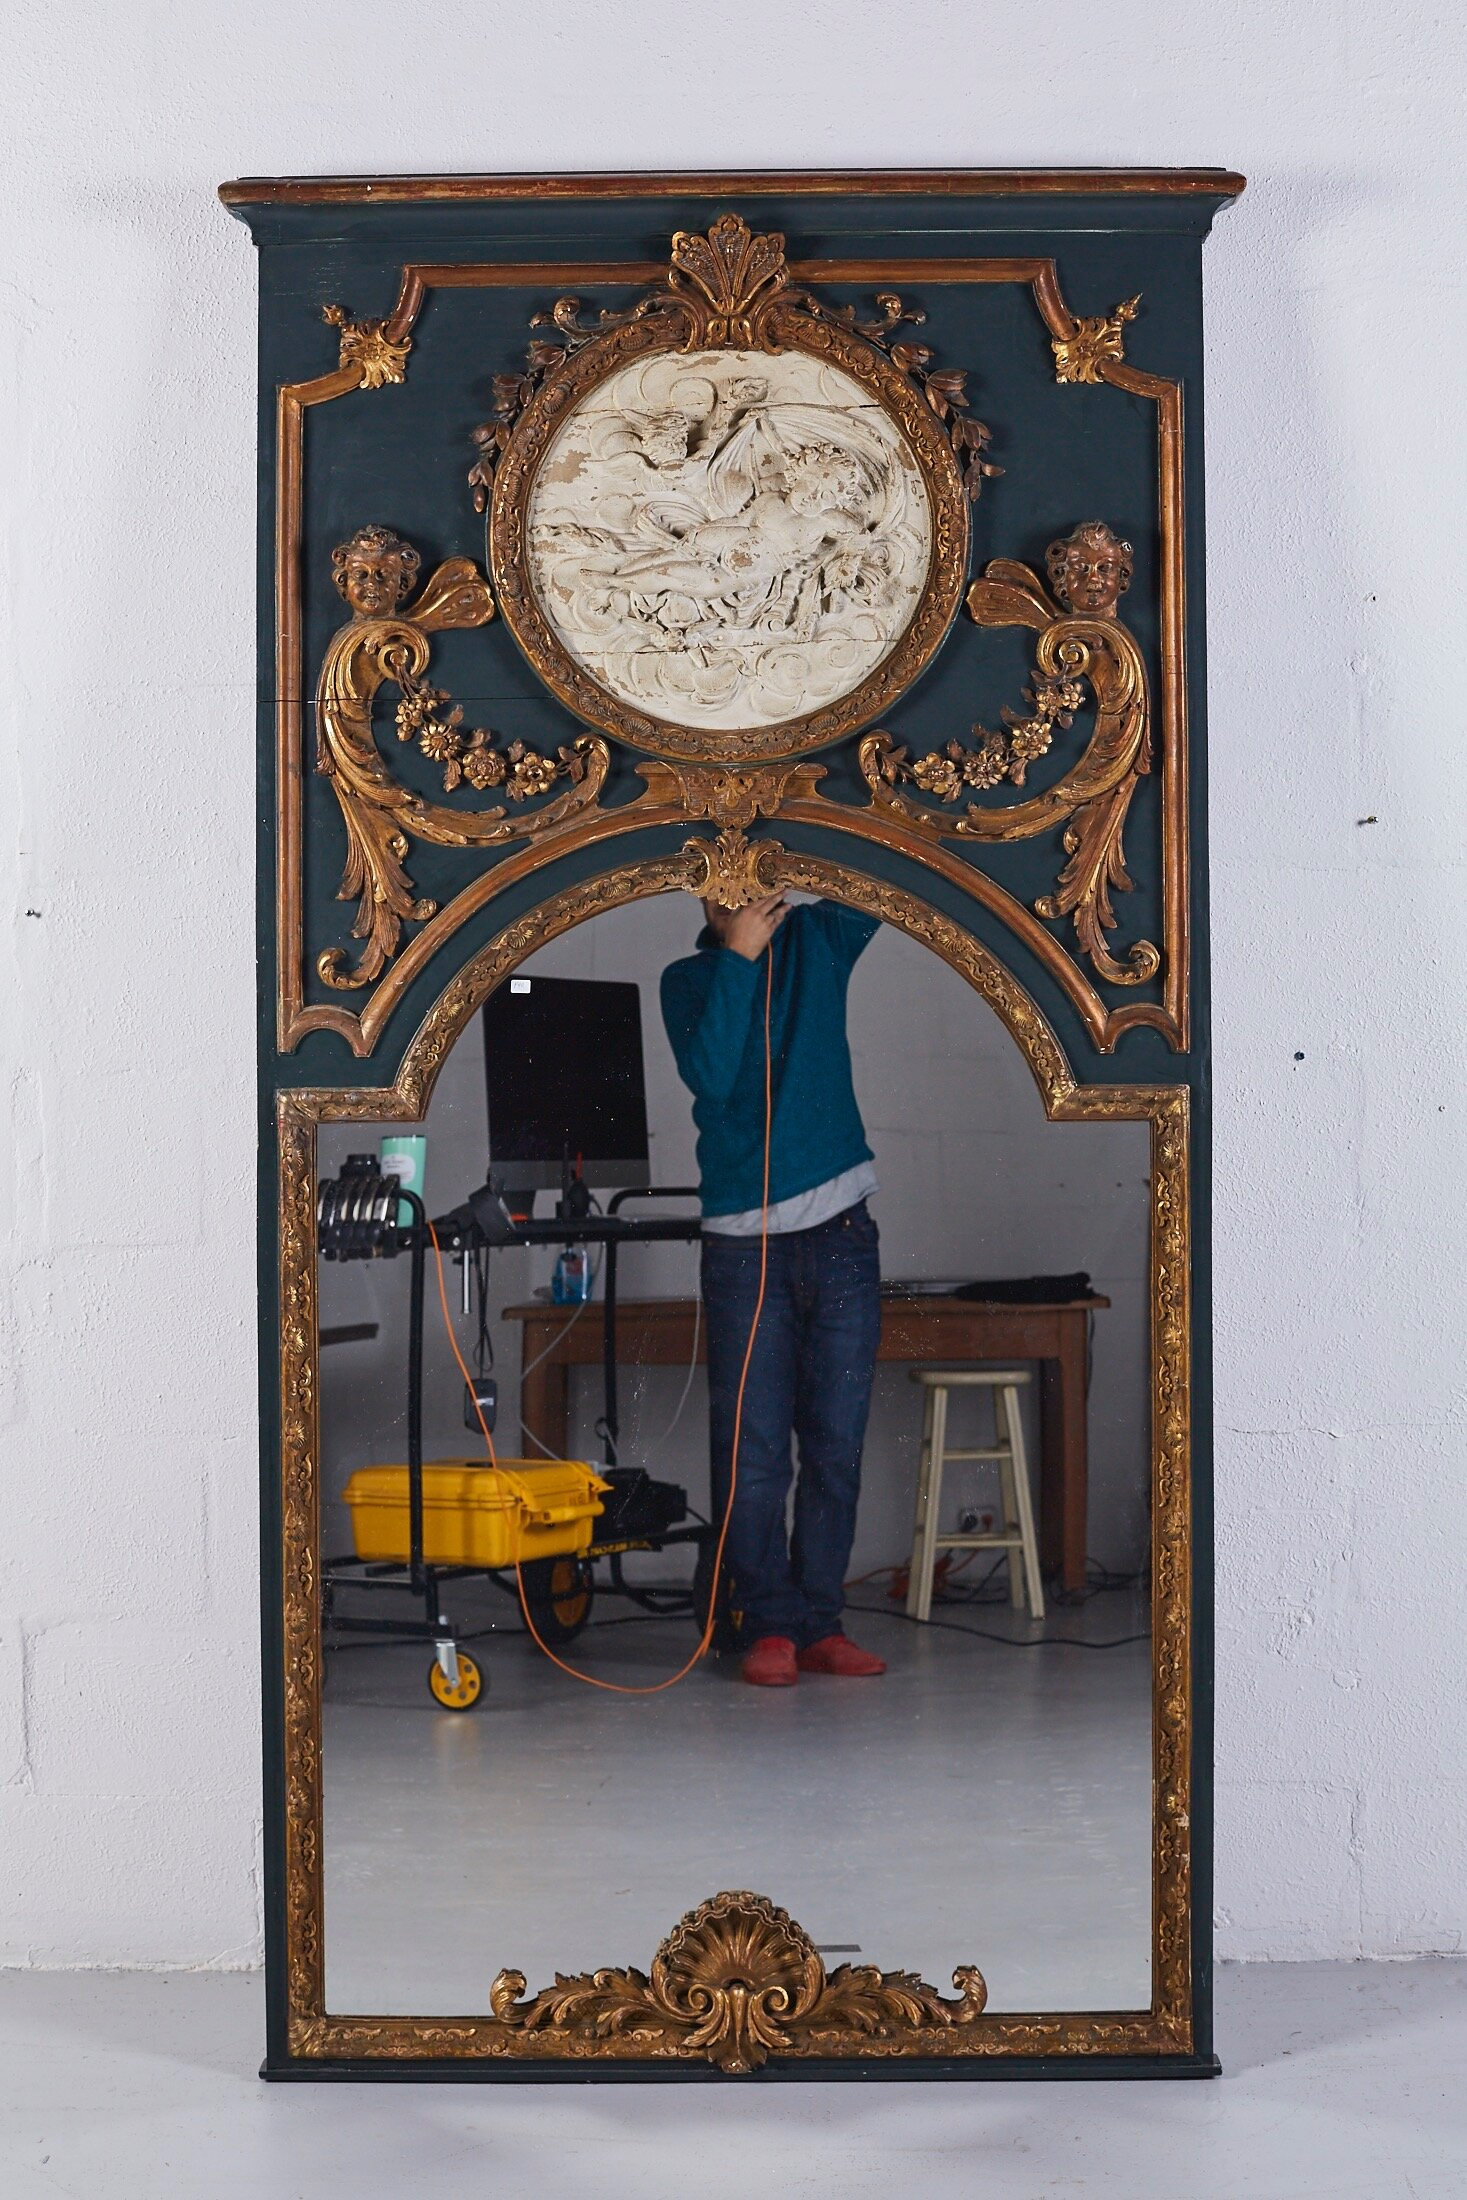 Photographing a large Venetian Mirror for an auction house. The mirror surface will be replaced in post.